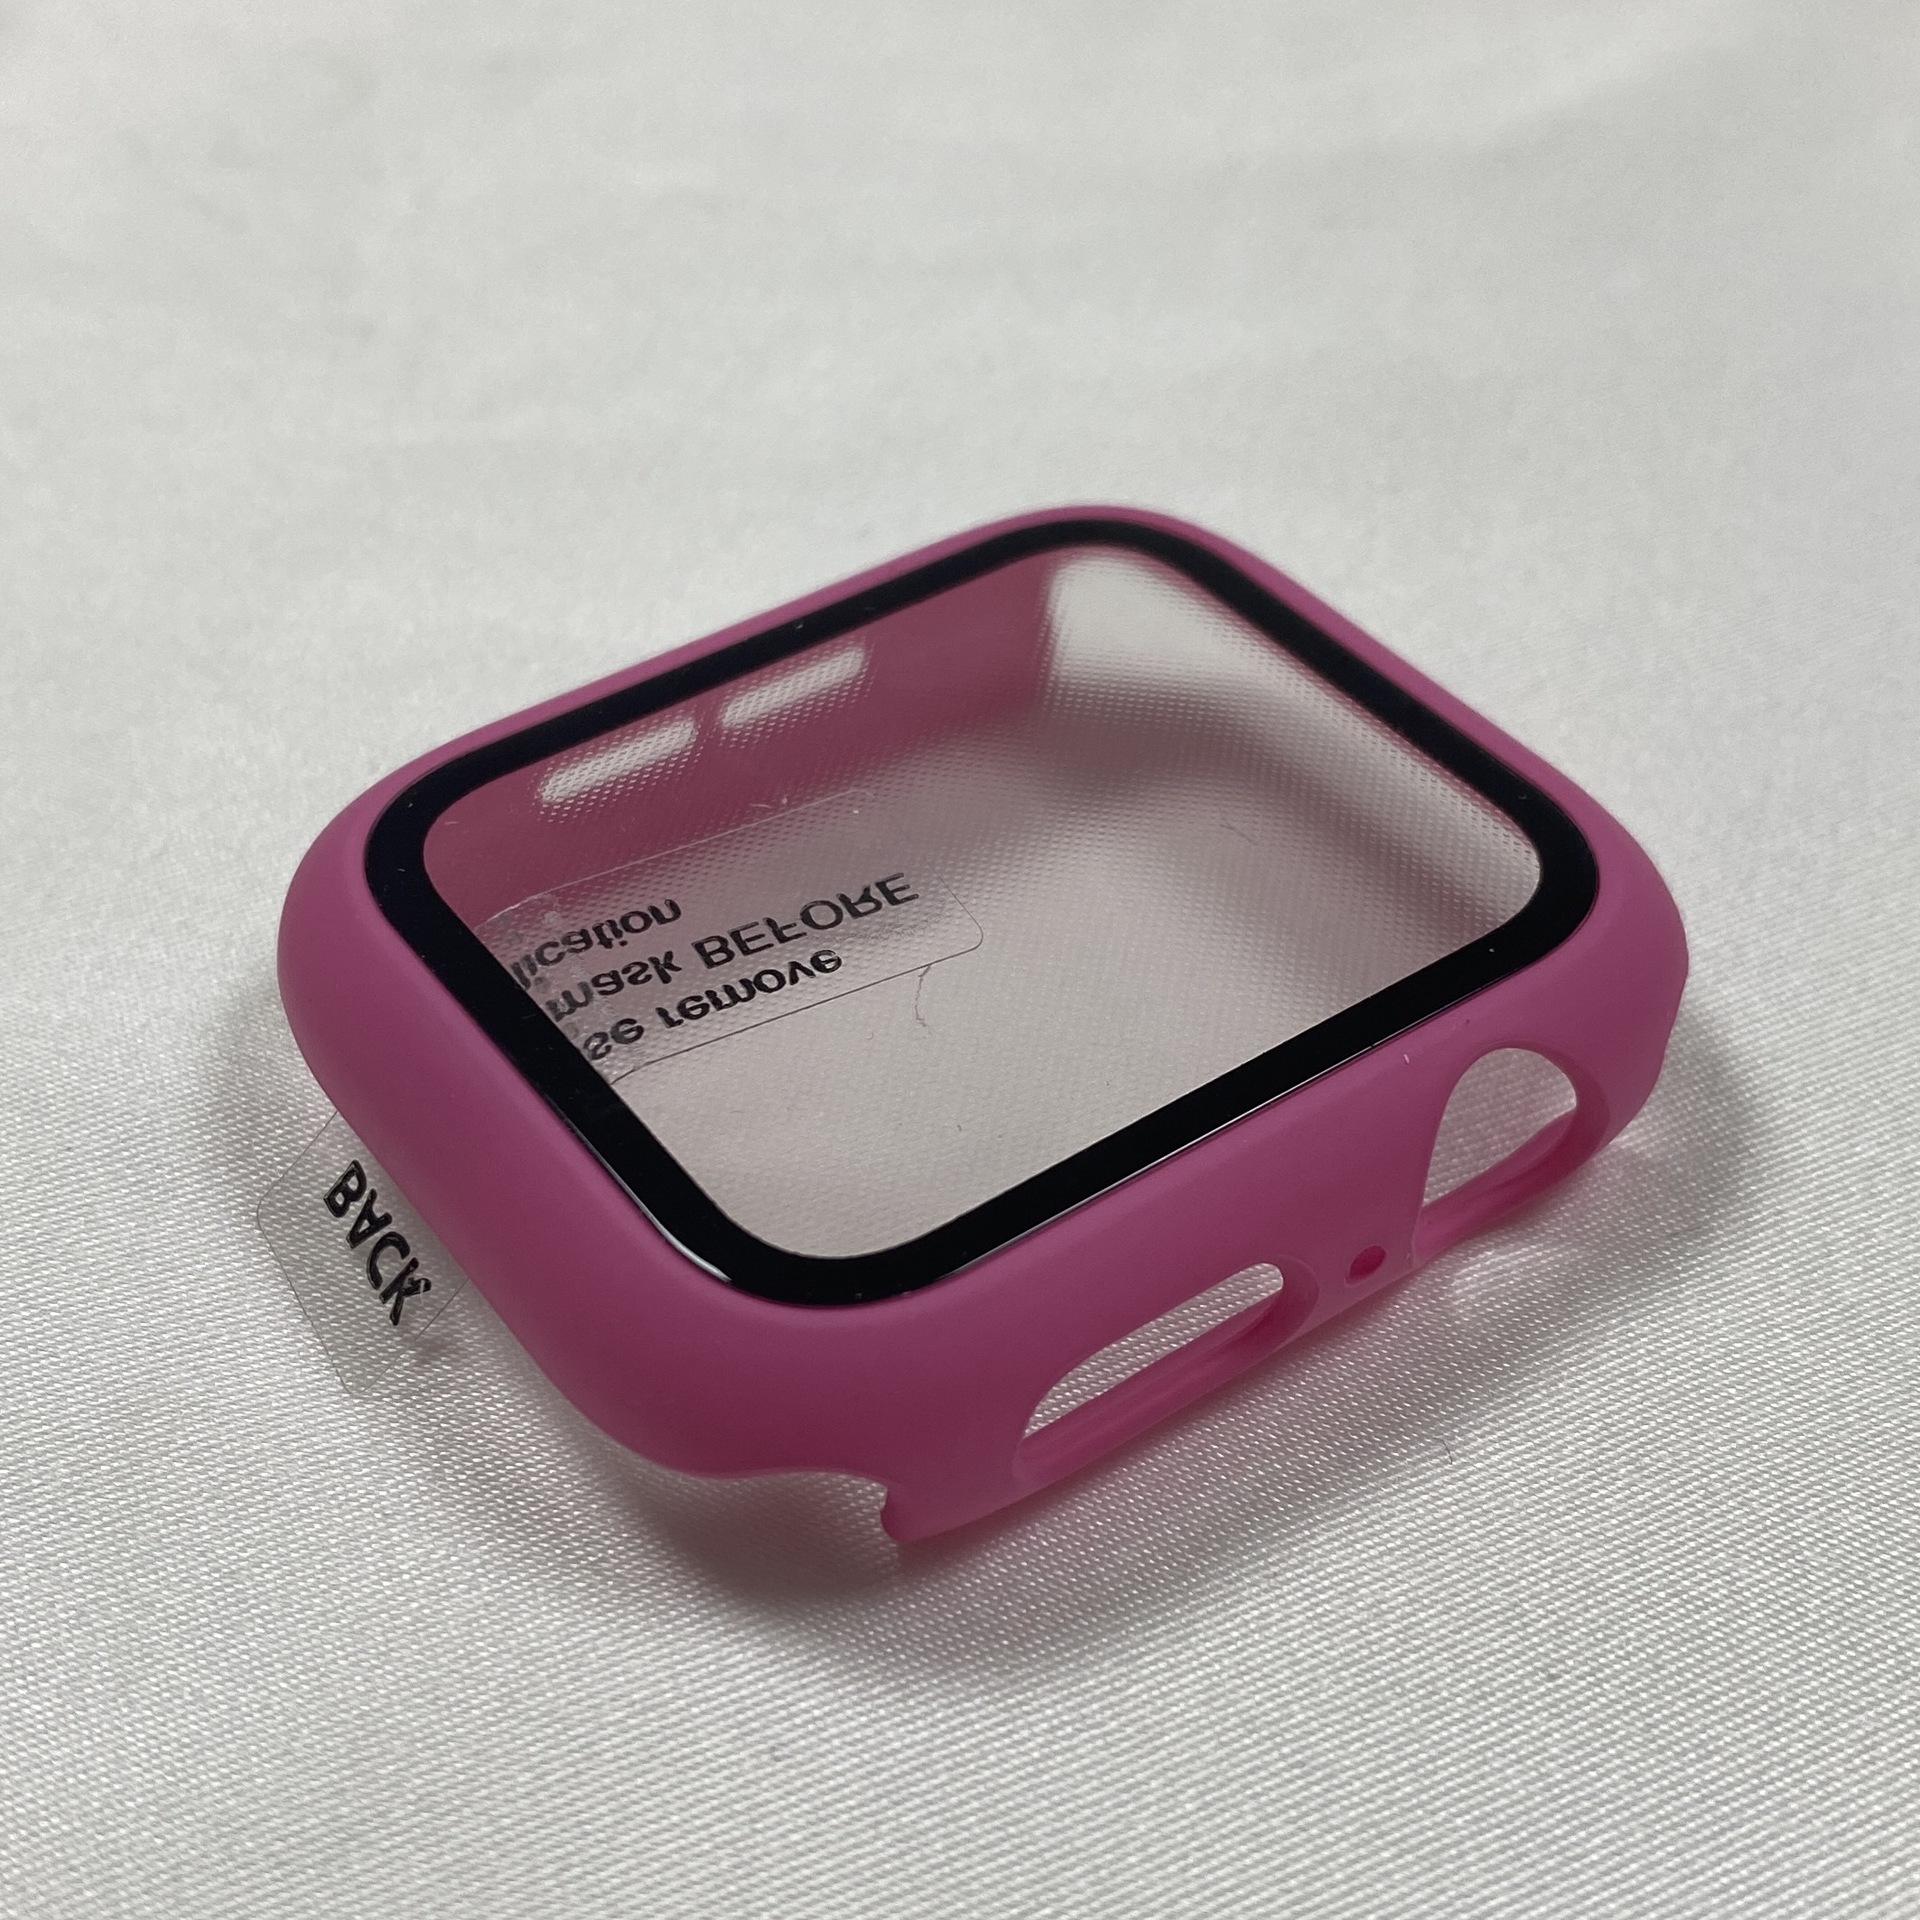 Apple Watch Shell Film Integrated For Iwatch 123456 Se Generation Matte All-inclusive Pc Shell Tempered Film Integrated